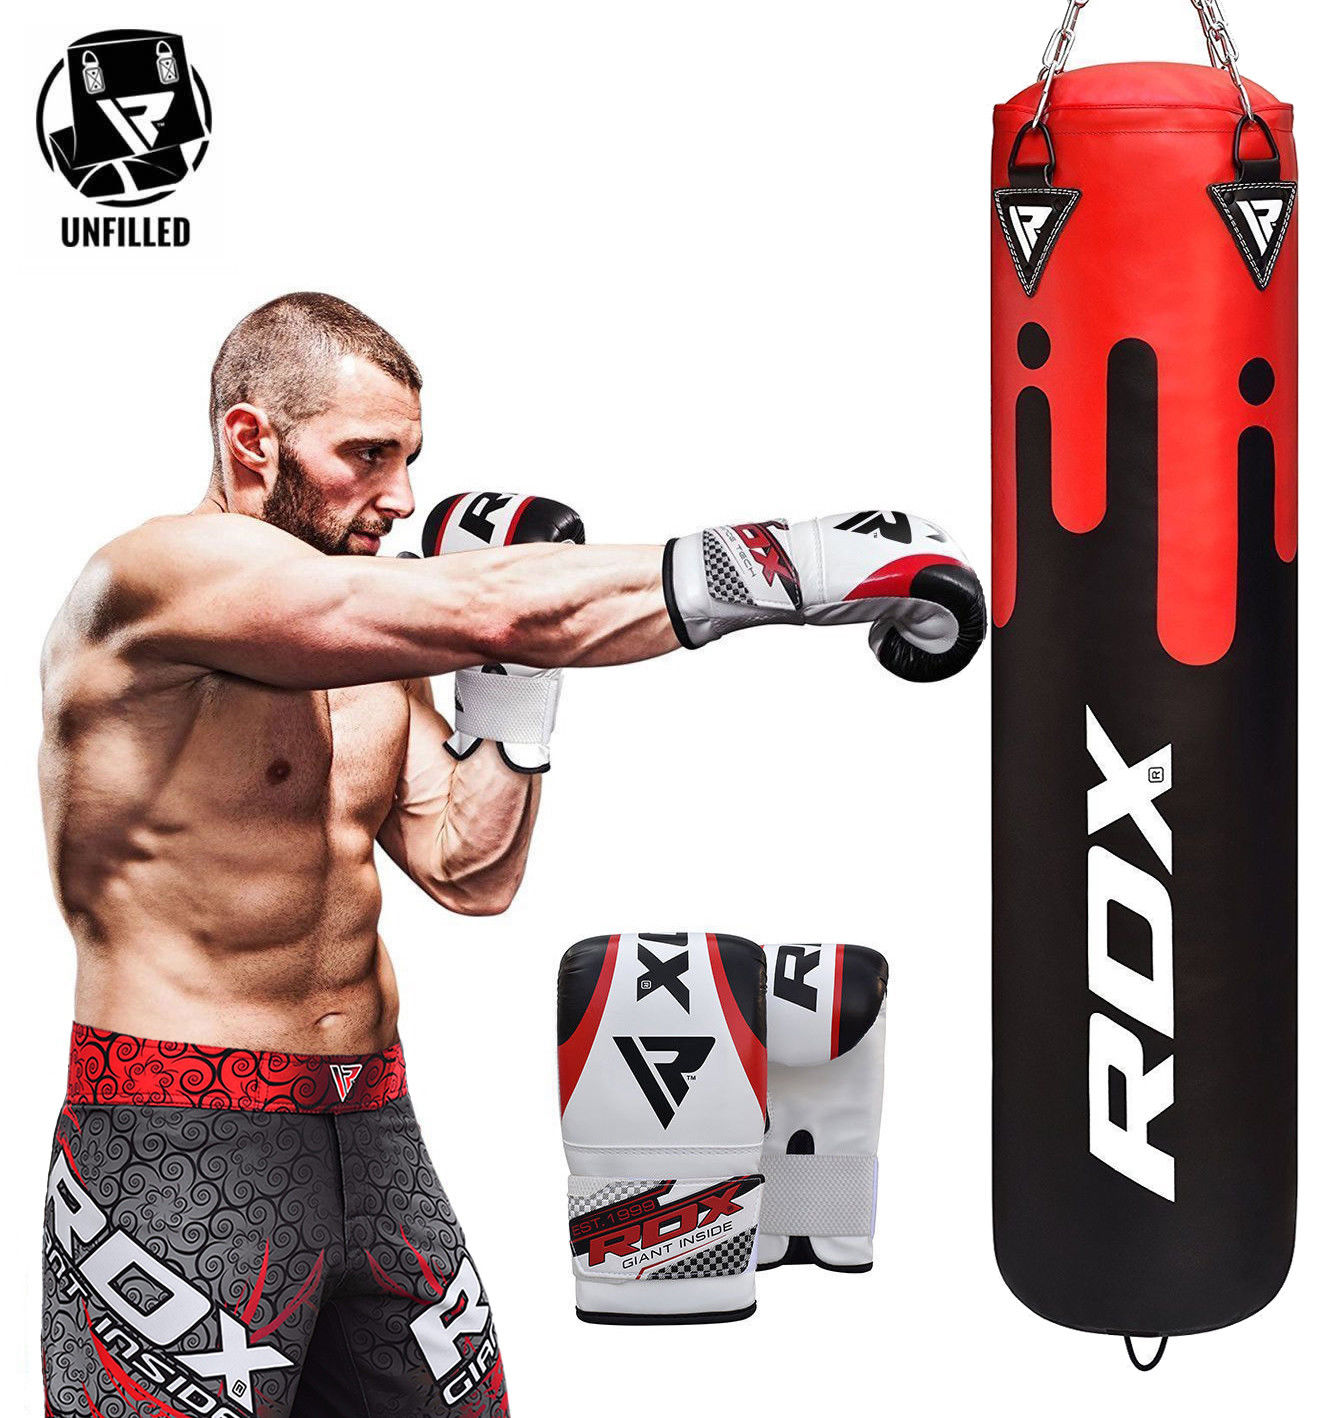 RDX F9 Heavy Red Punching Bag Kit With Bag Mitts